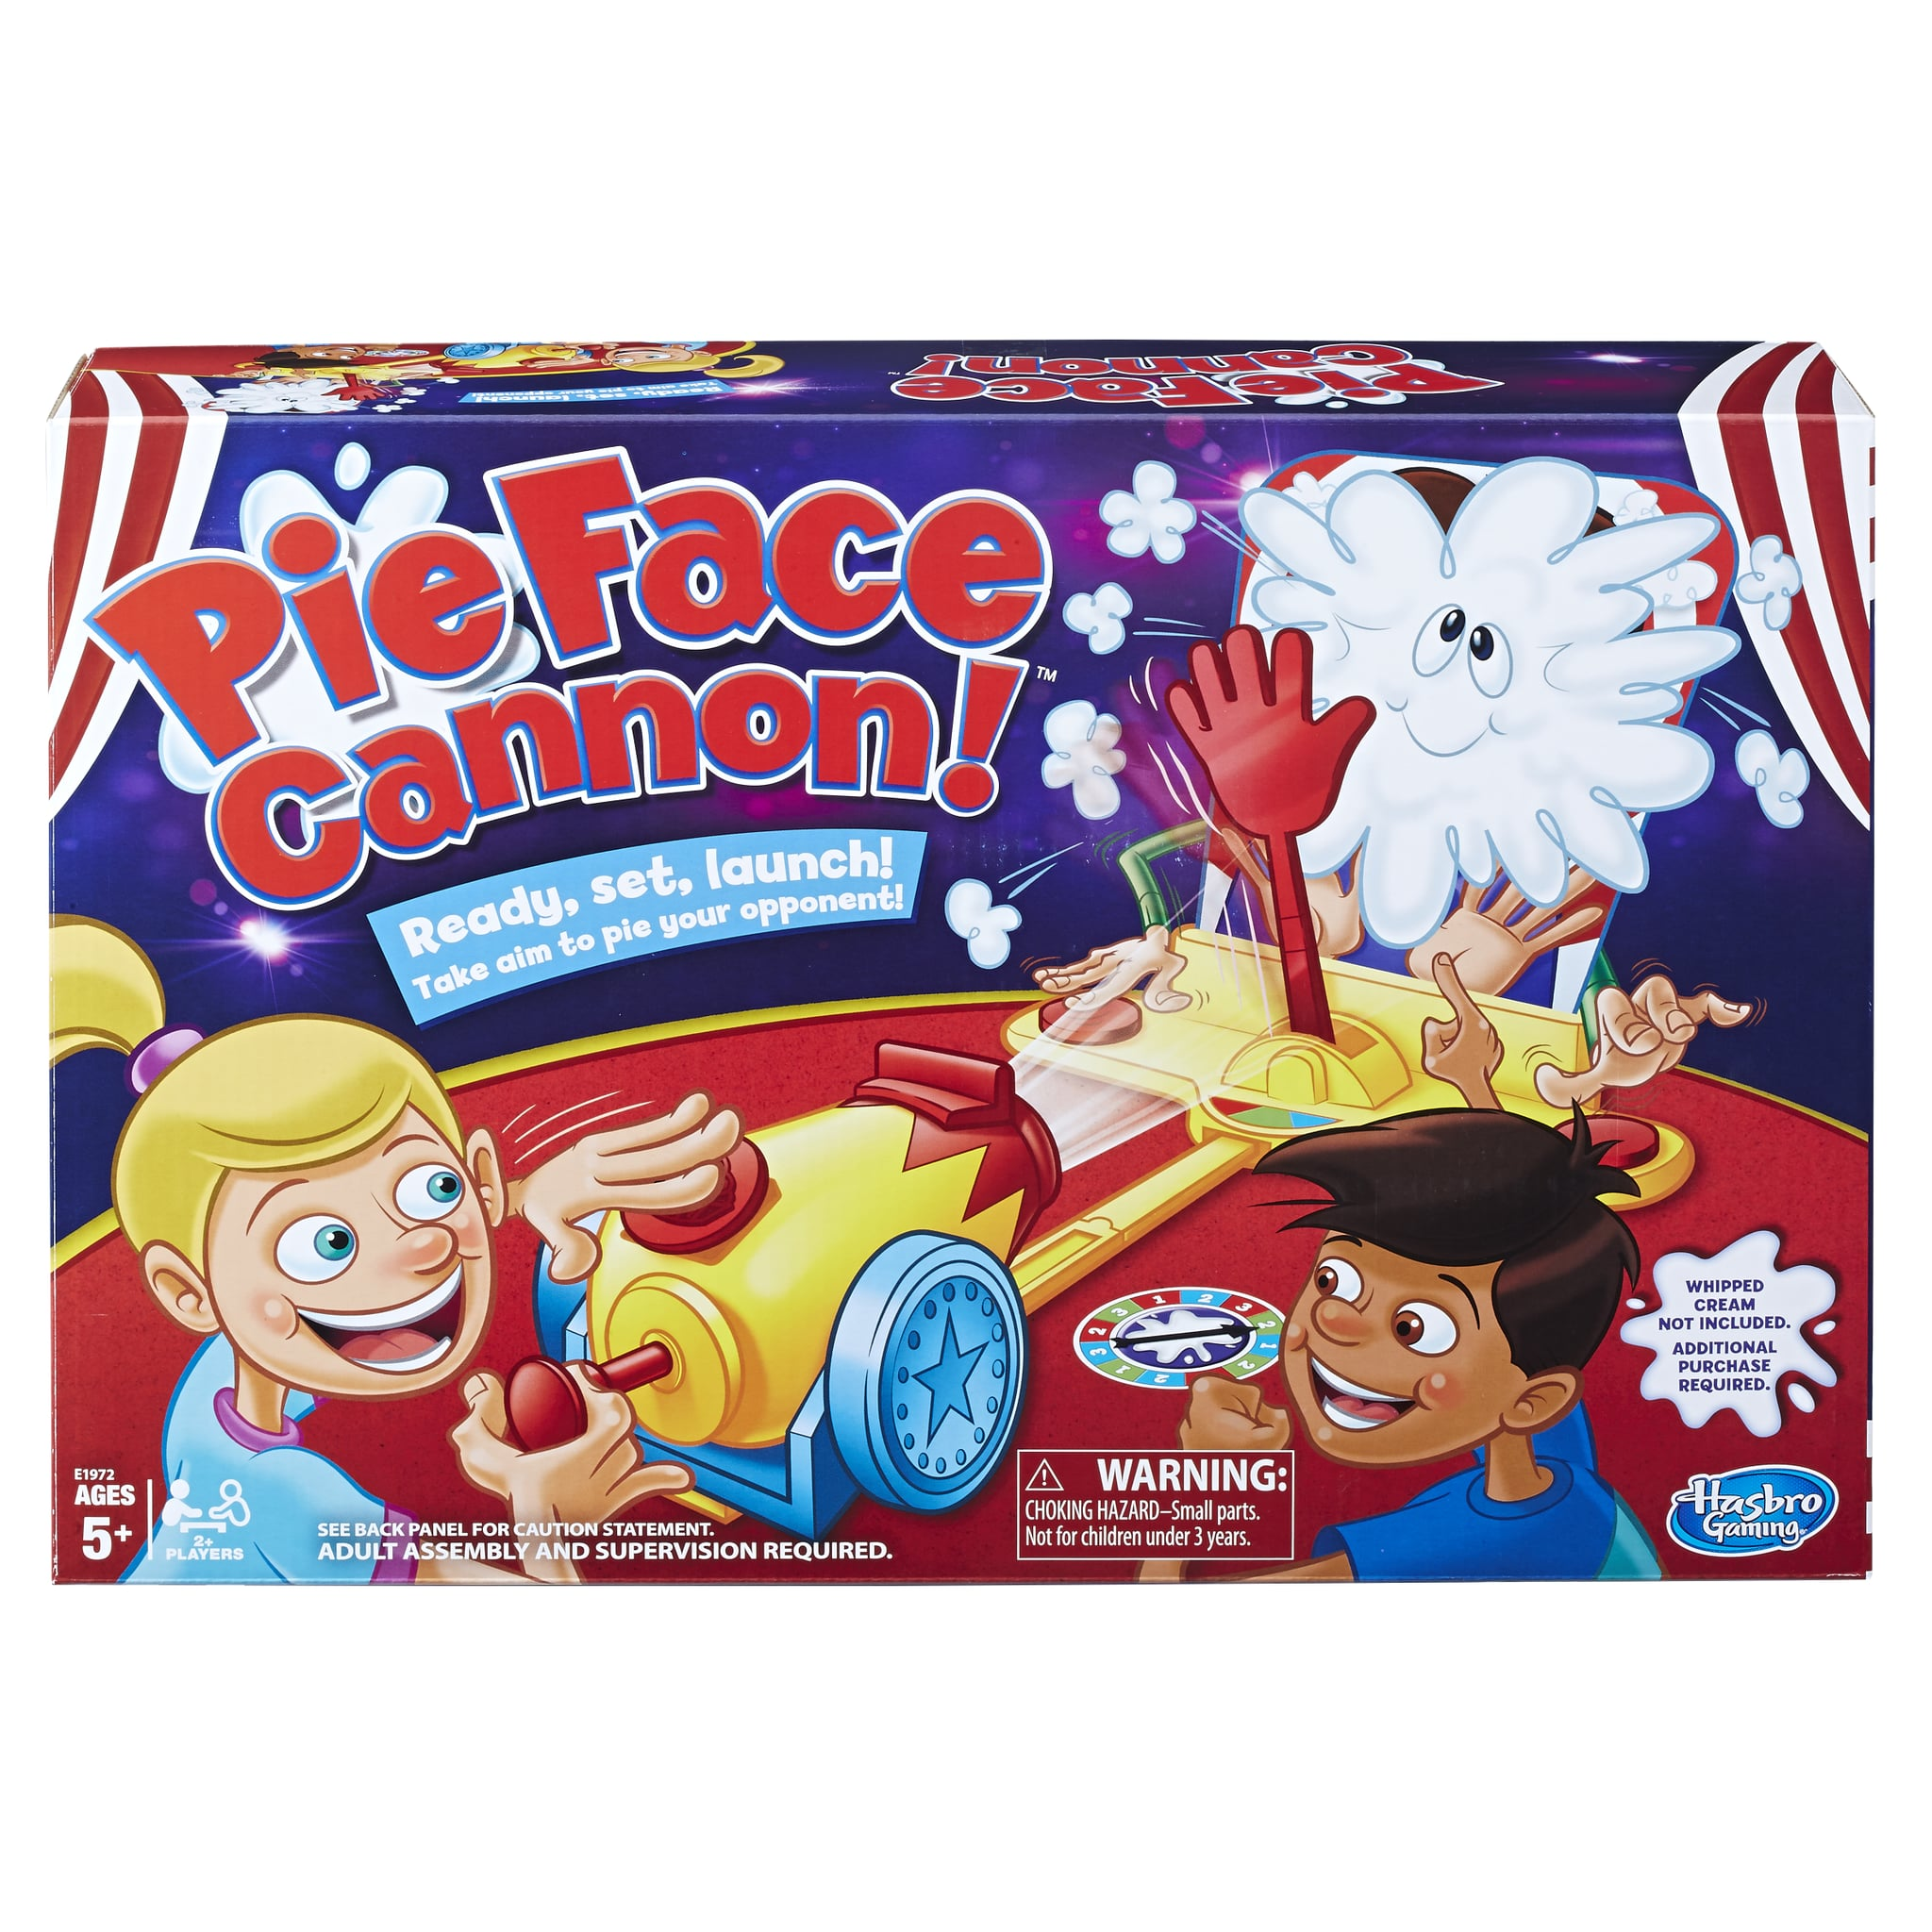 Hasbro pie face cannon game popsugar moms it the perfect holiday gift in the meantime check out our favorite board games that would be perfect for your next family game night hasbro pie face solutioingenieria Choice Image